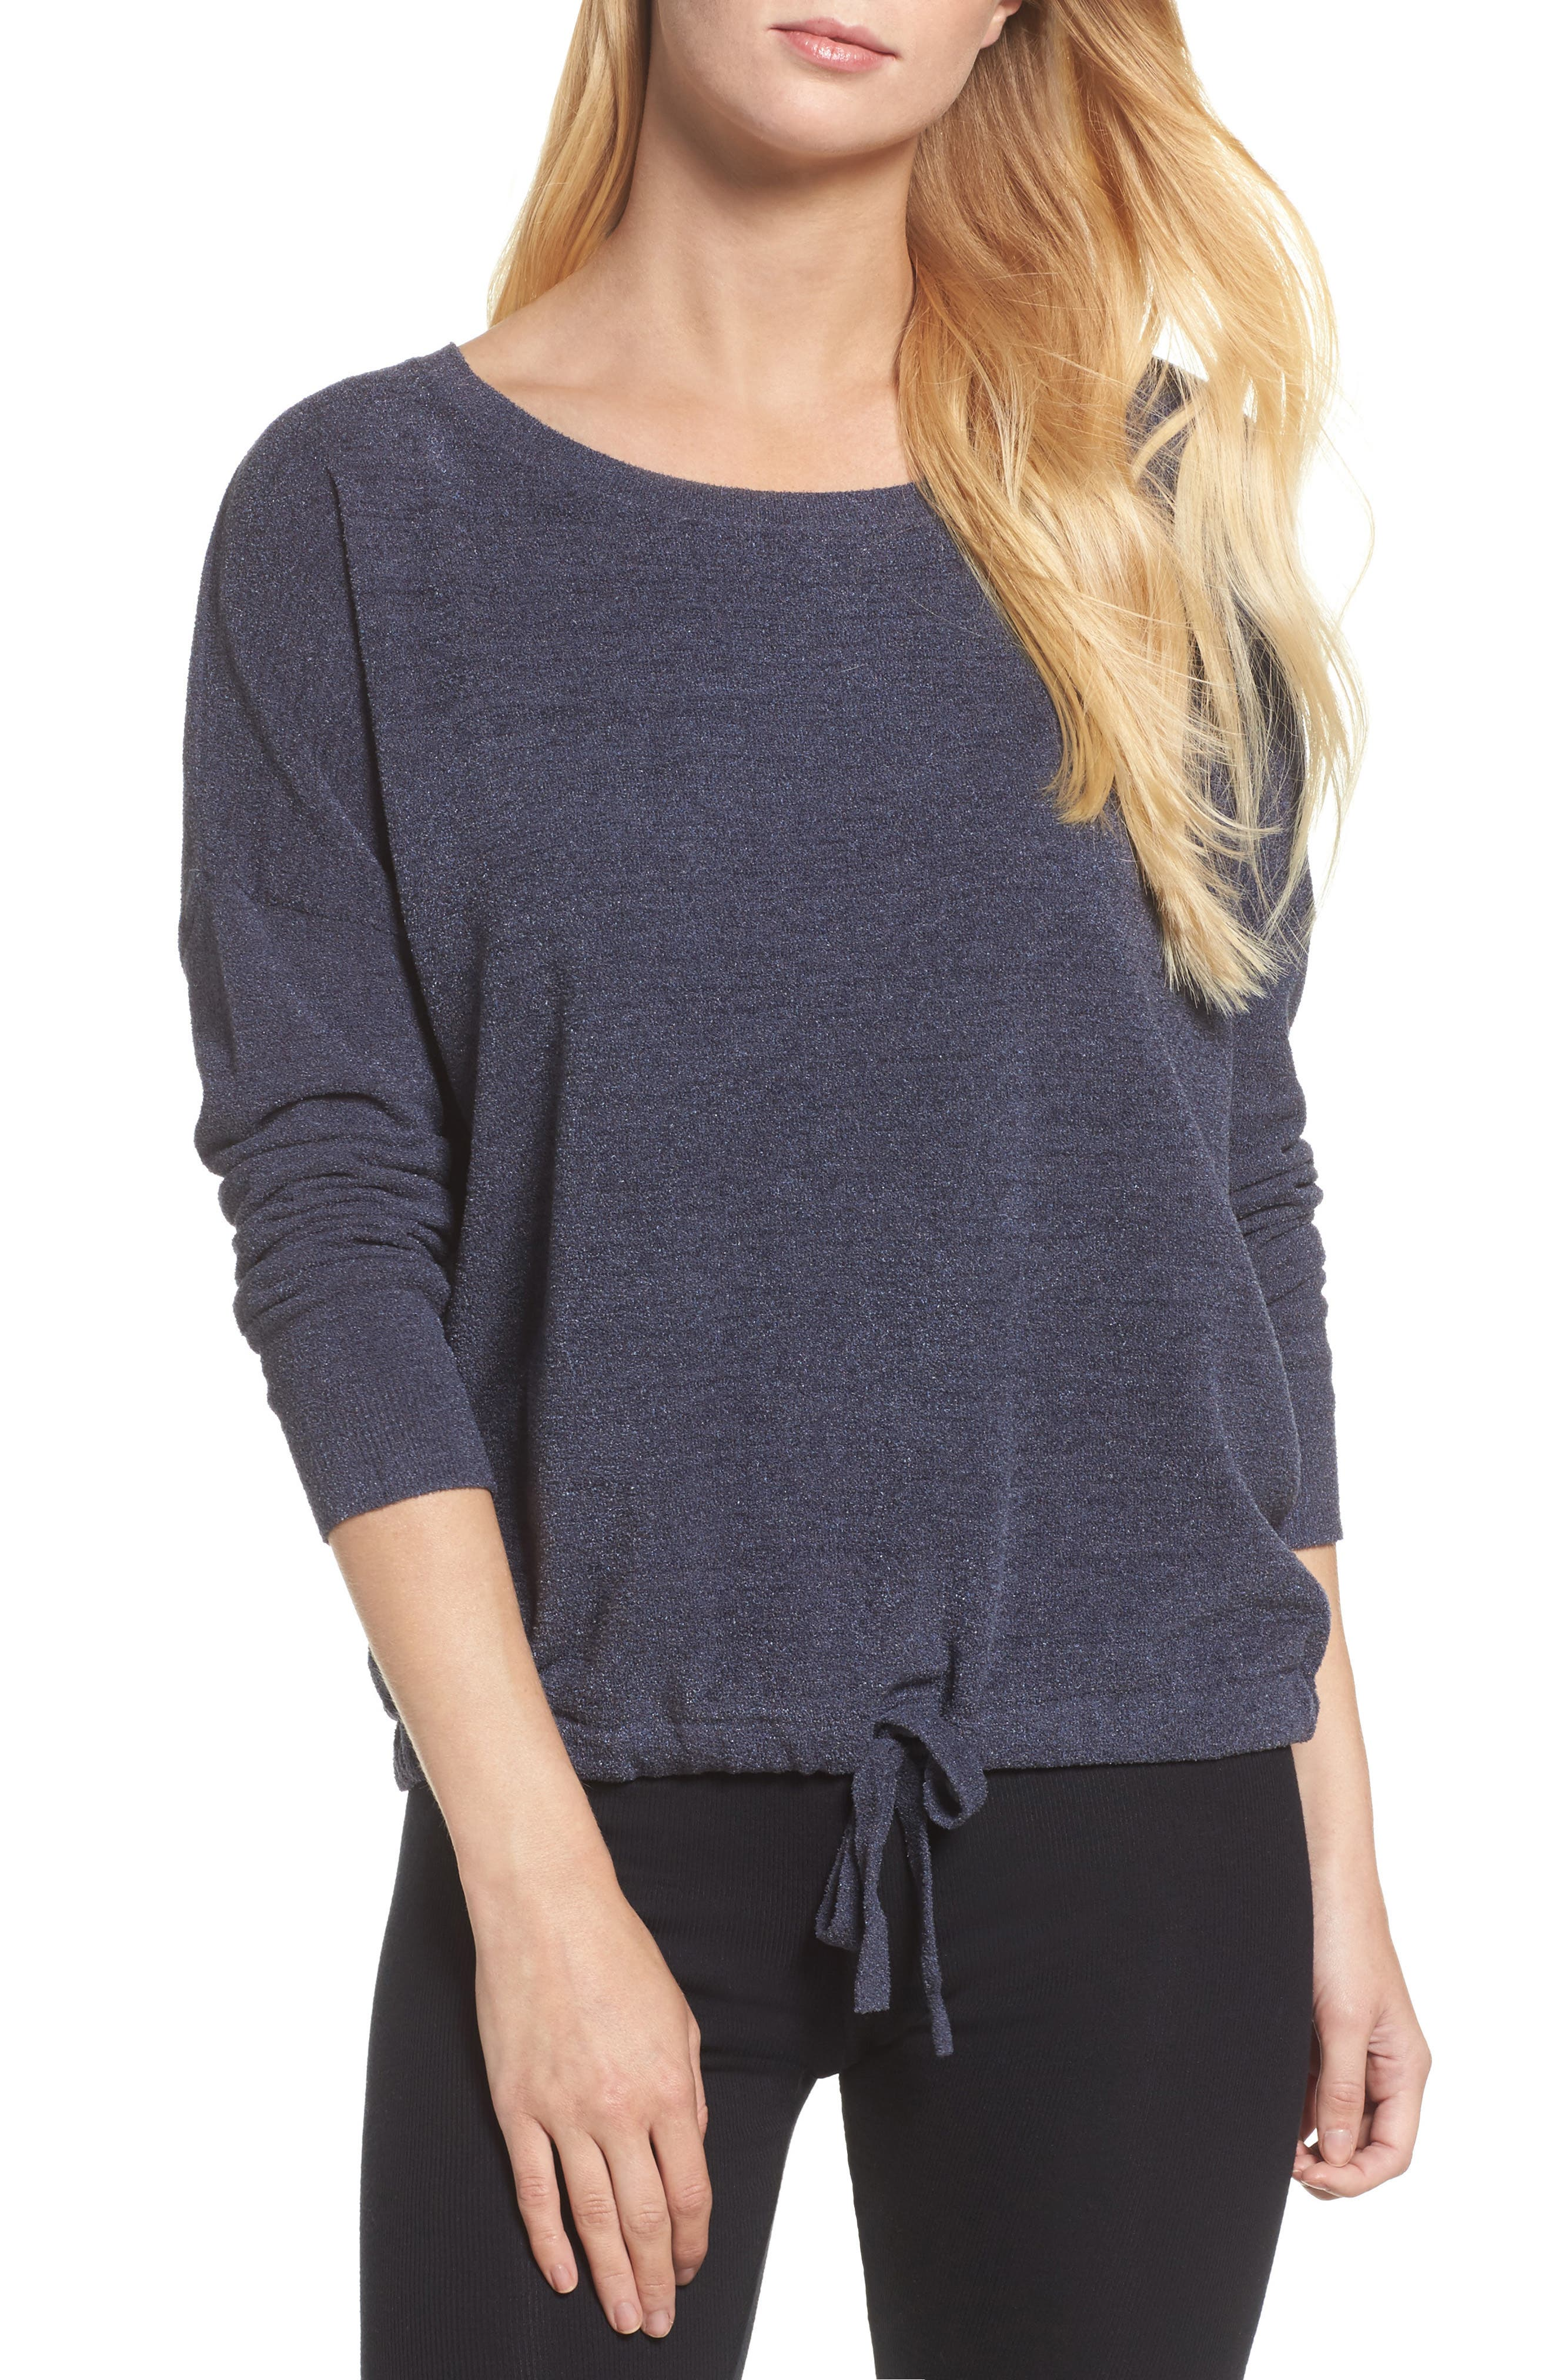 Barefoot Dreams(R) Cozychic Ultra Lite(R) Lounge Pullover